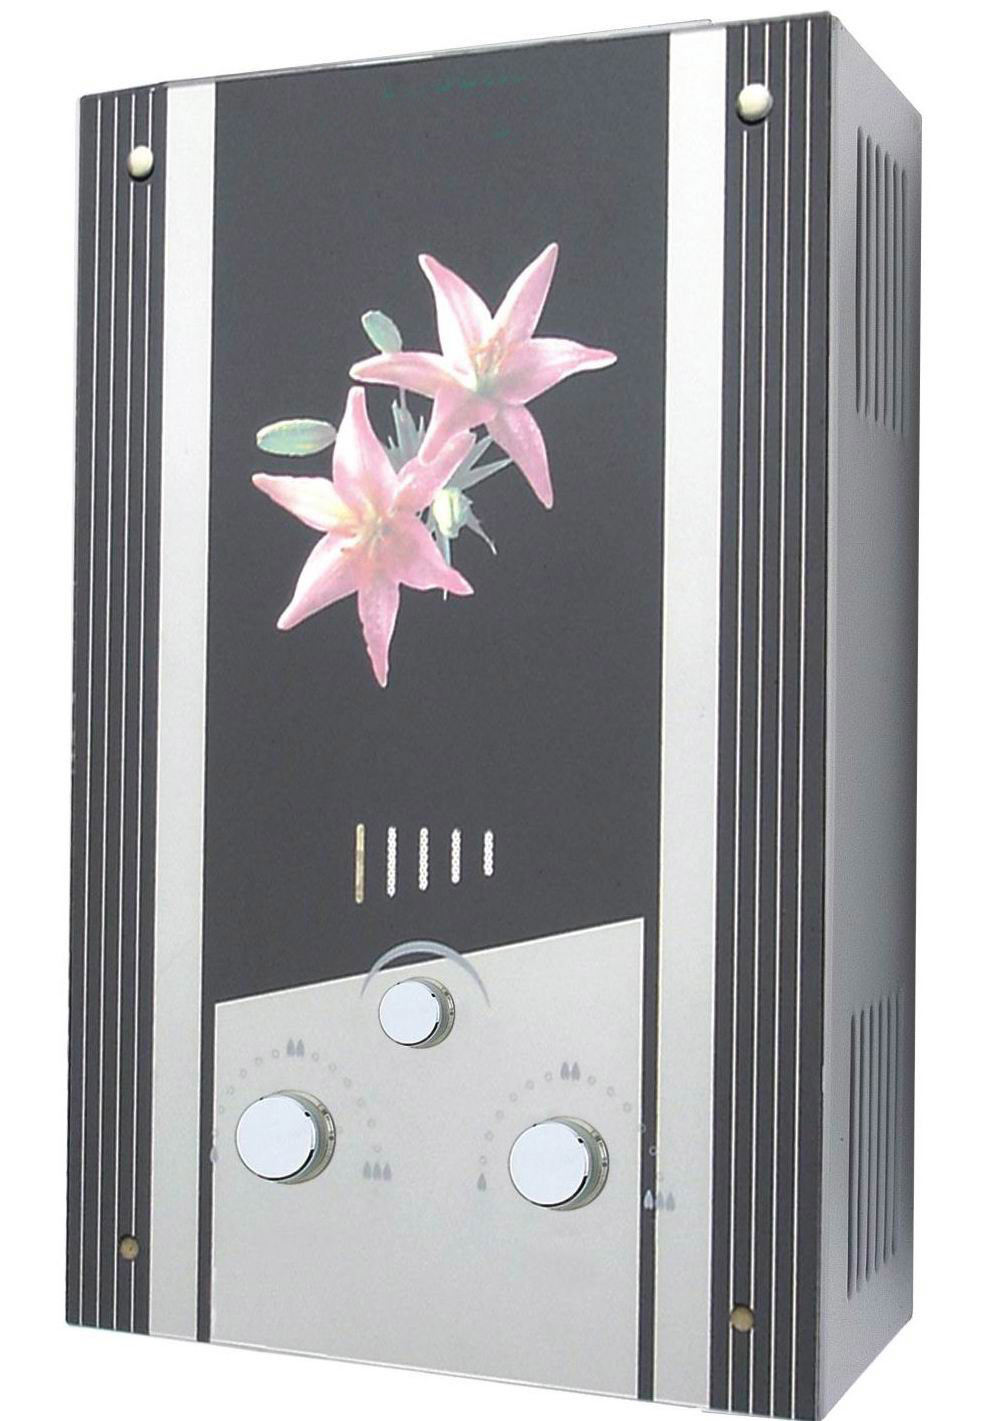 Elite Gas Water Heater with Summer/Winter Switch (S51)